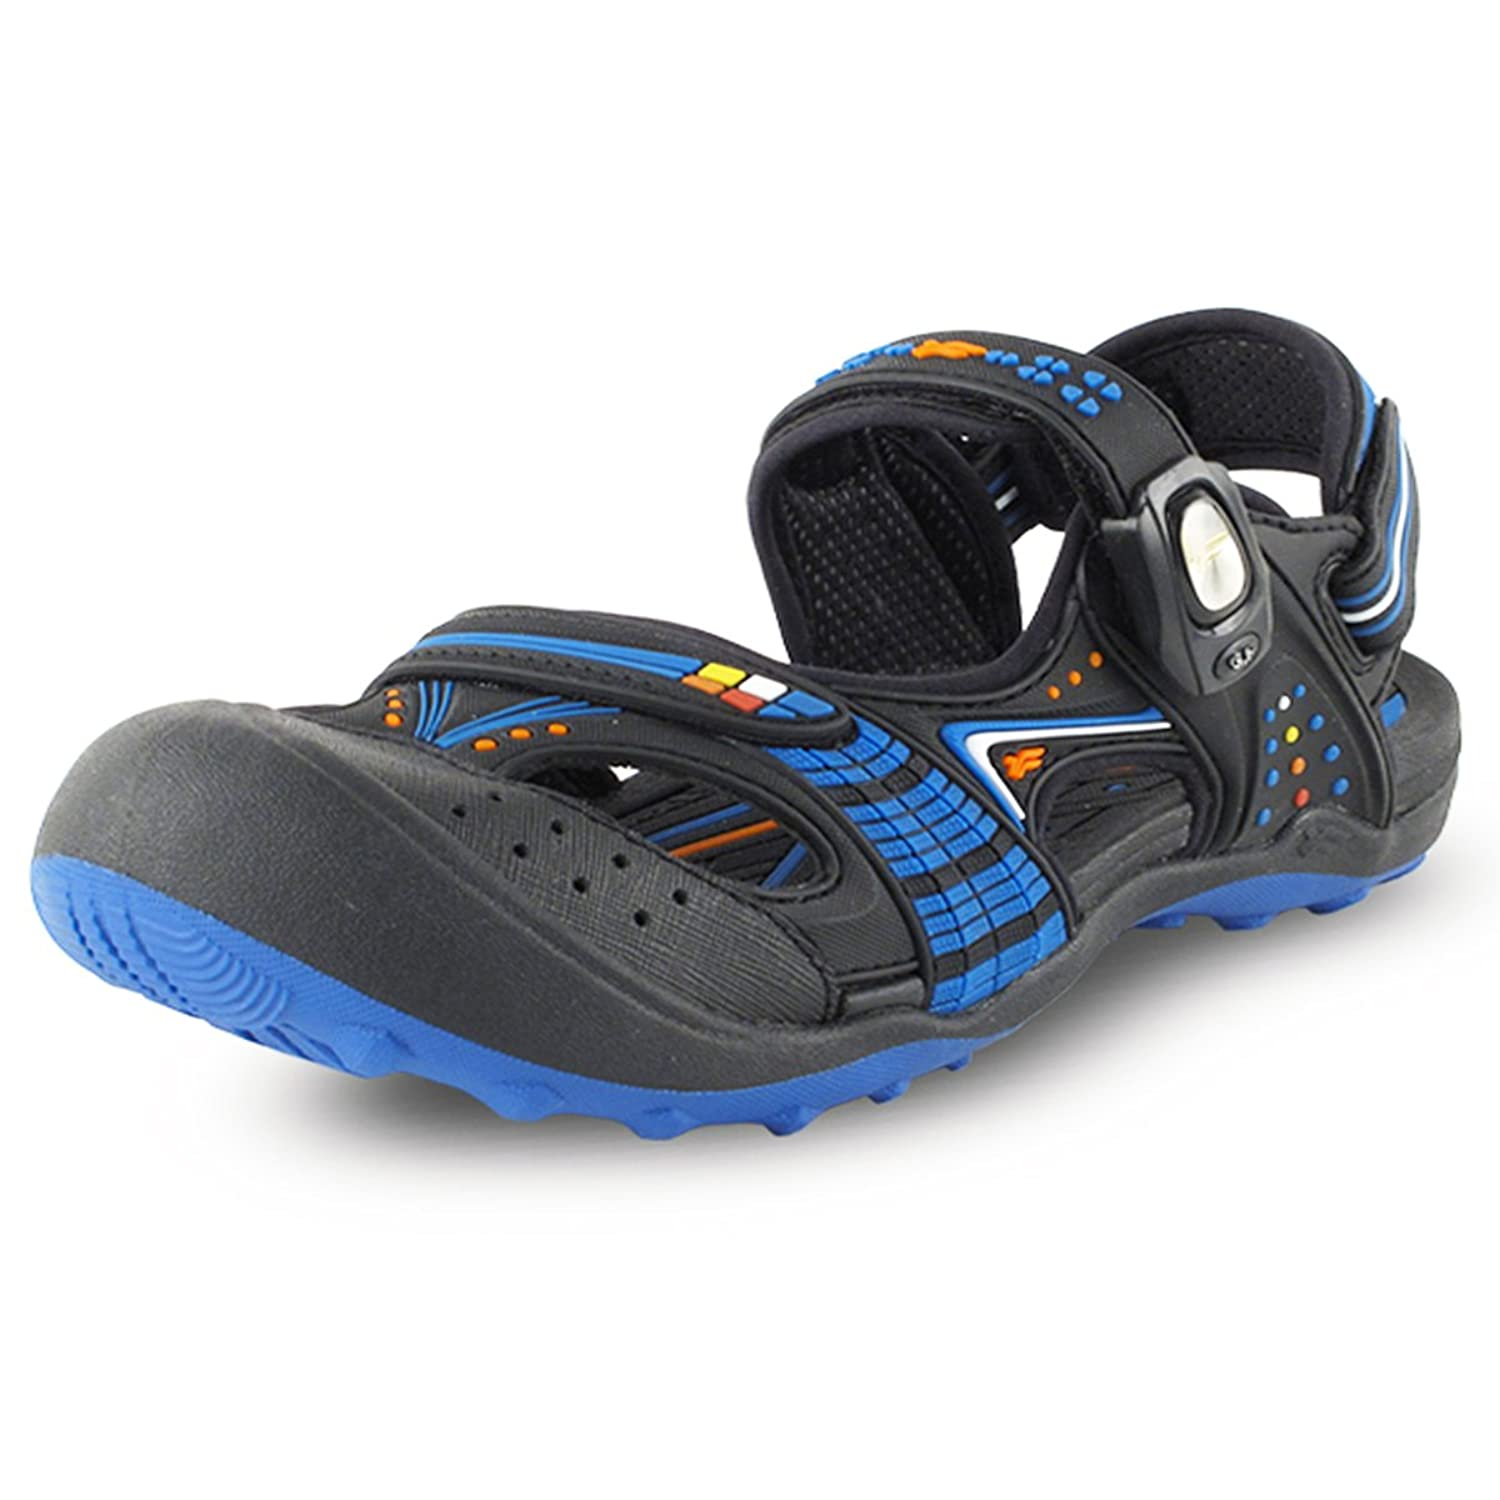 GP5937 Men Women Snap Lock Sports Water Shoes Sandals: Easy Magnetic Closure